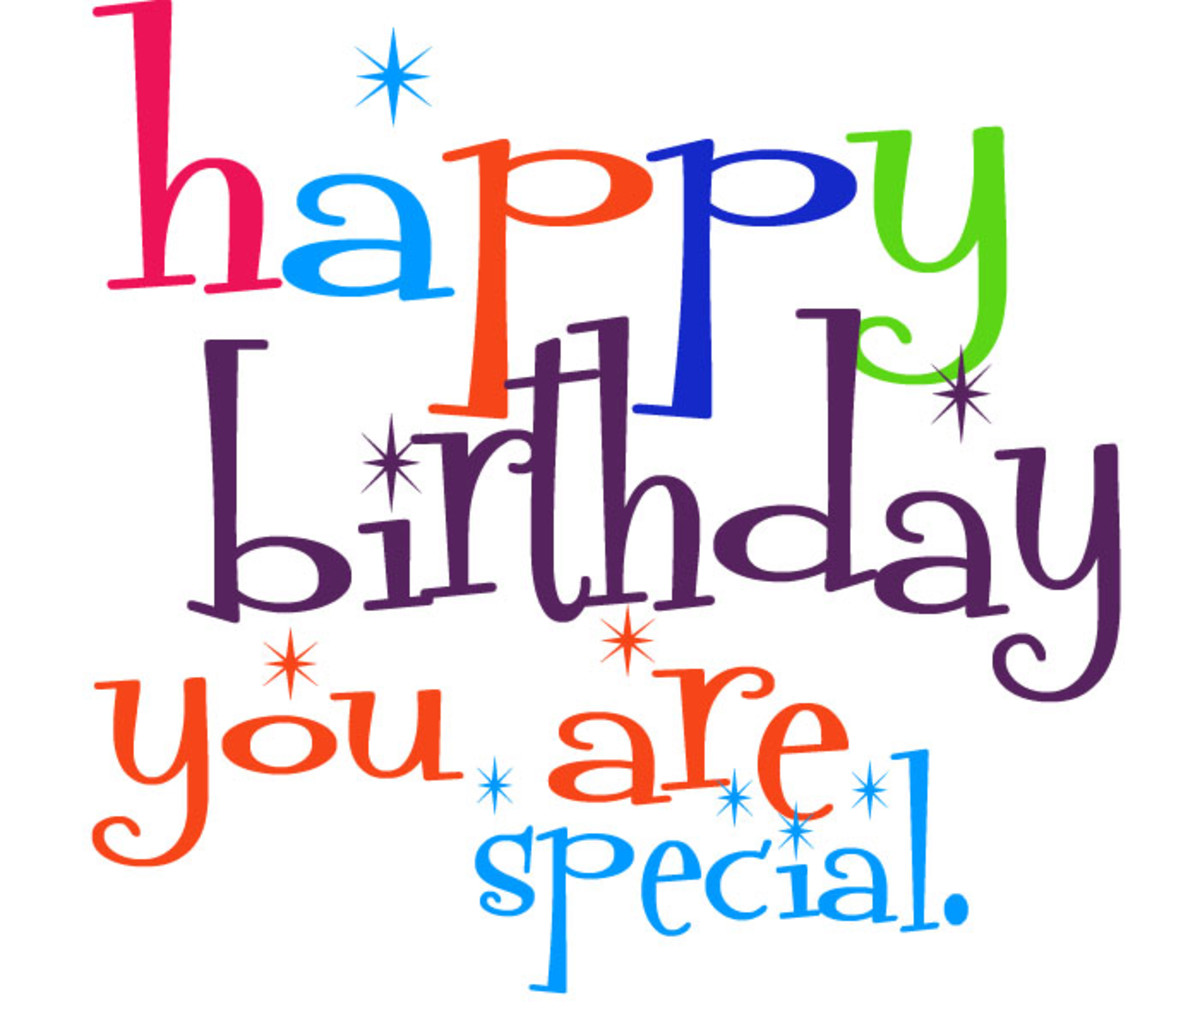 Cute Birthday Clipart for Facebook - You Are Special!